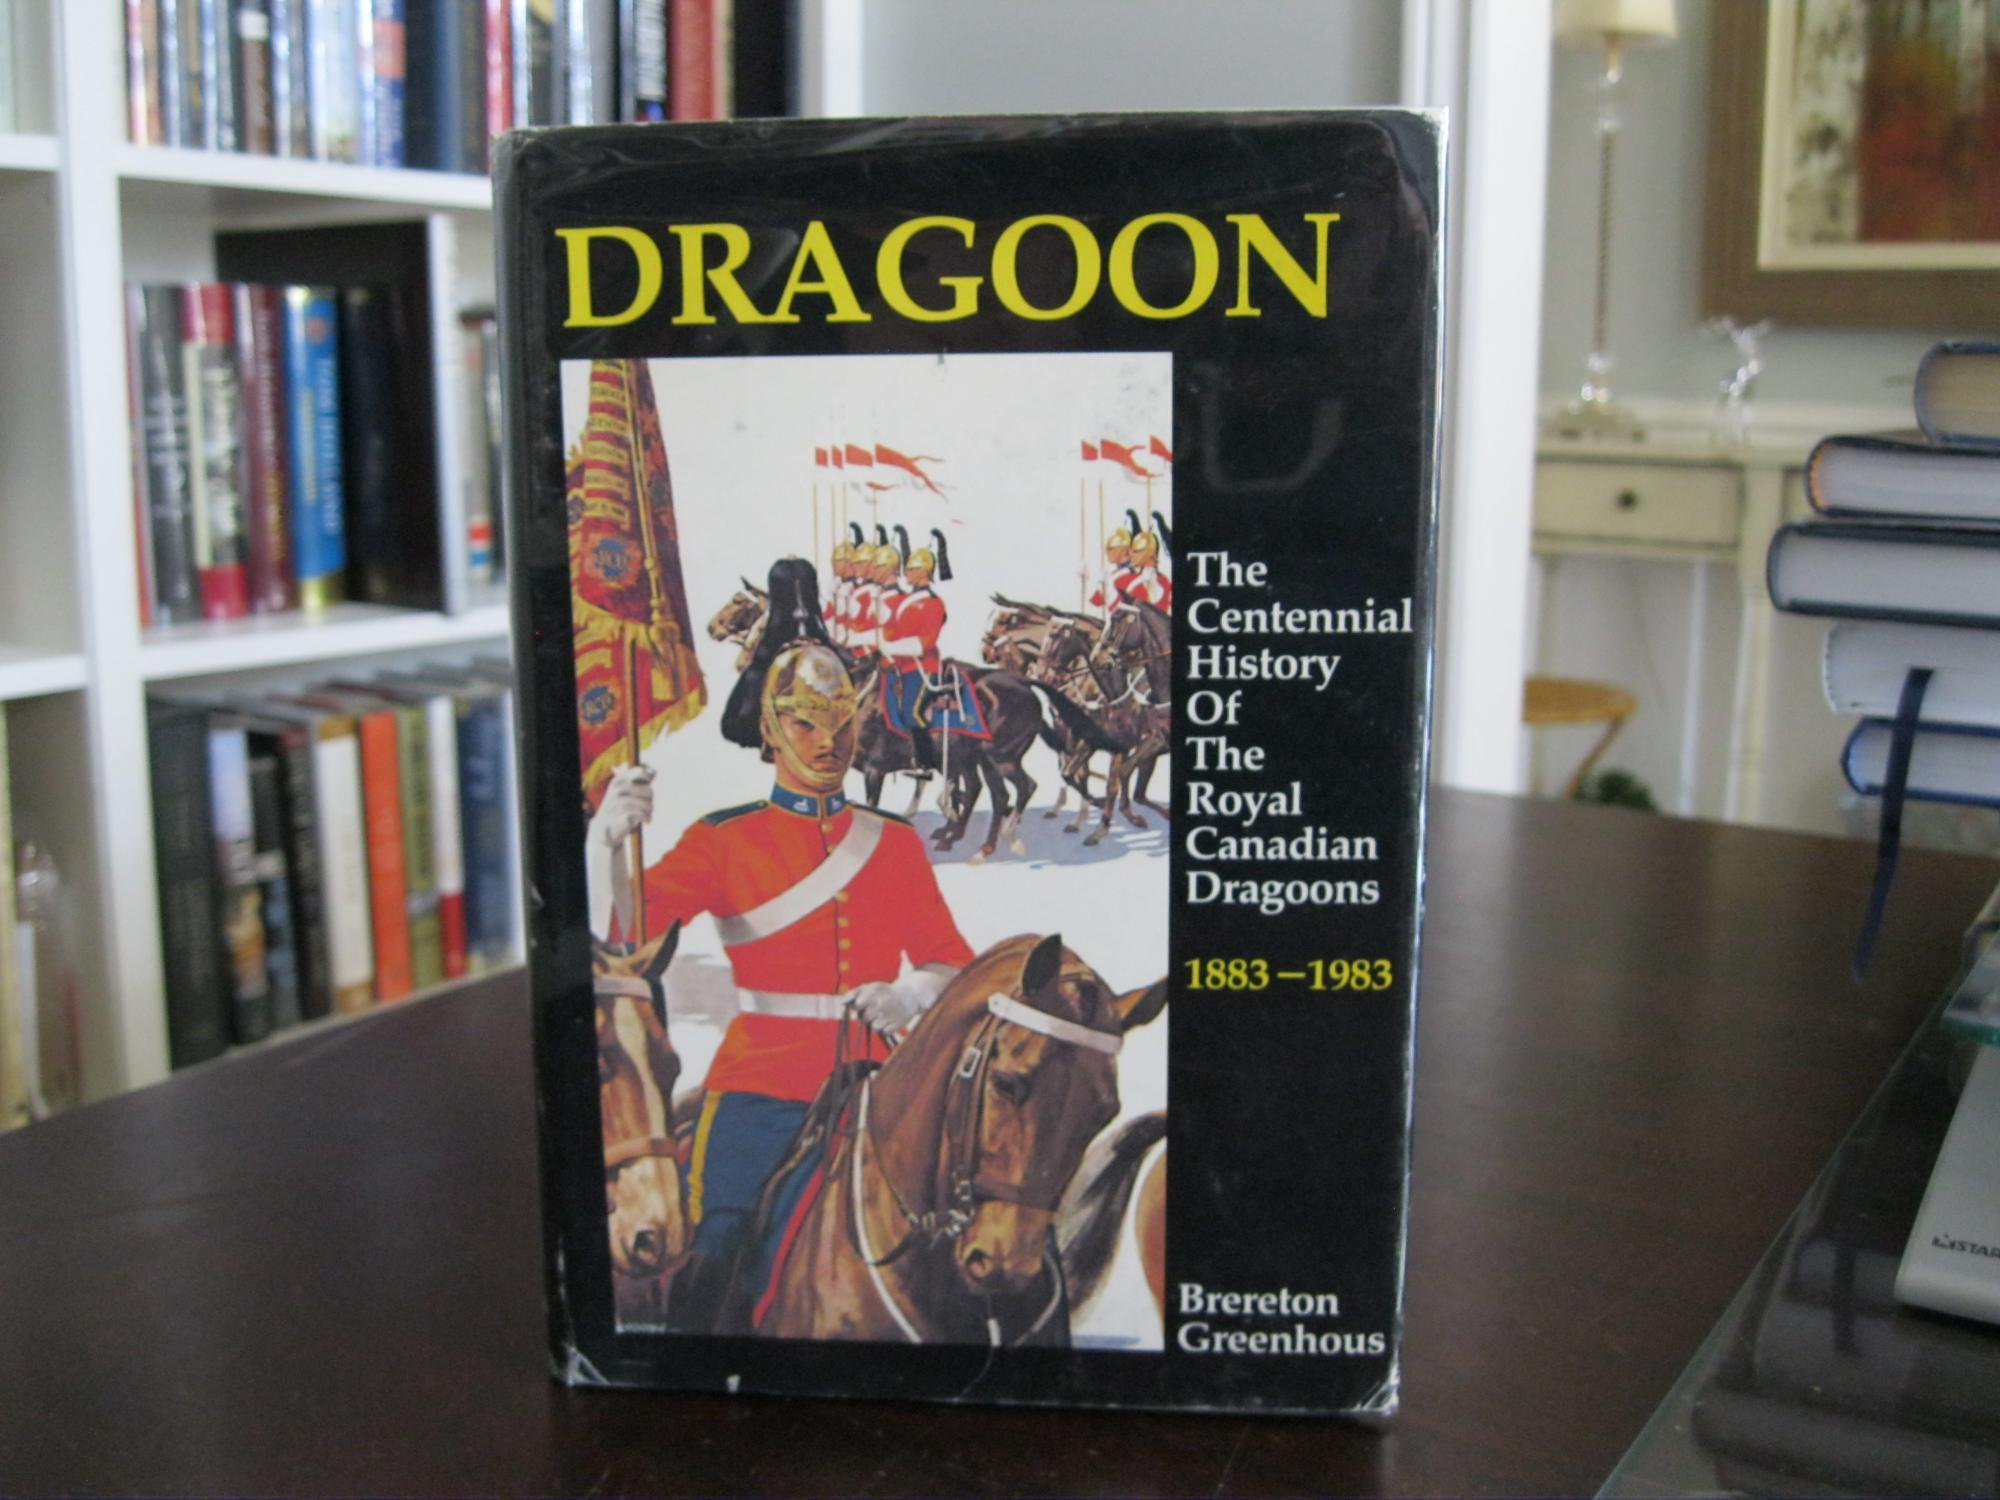 DRAGOON:_THE_CENTENNIAL_HISTORY_OF_THE_ROYAL_CANADIAN_DRAGOONS_1883_-_1983_GREENHOUS,_BRERETON_[Very_Good]_[Hardcover]